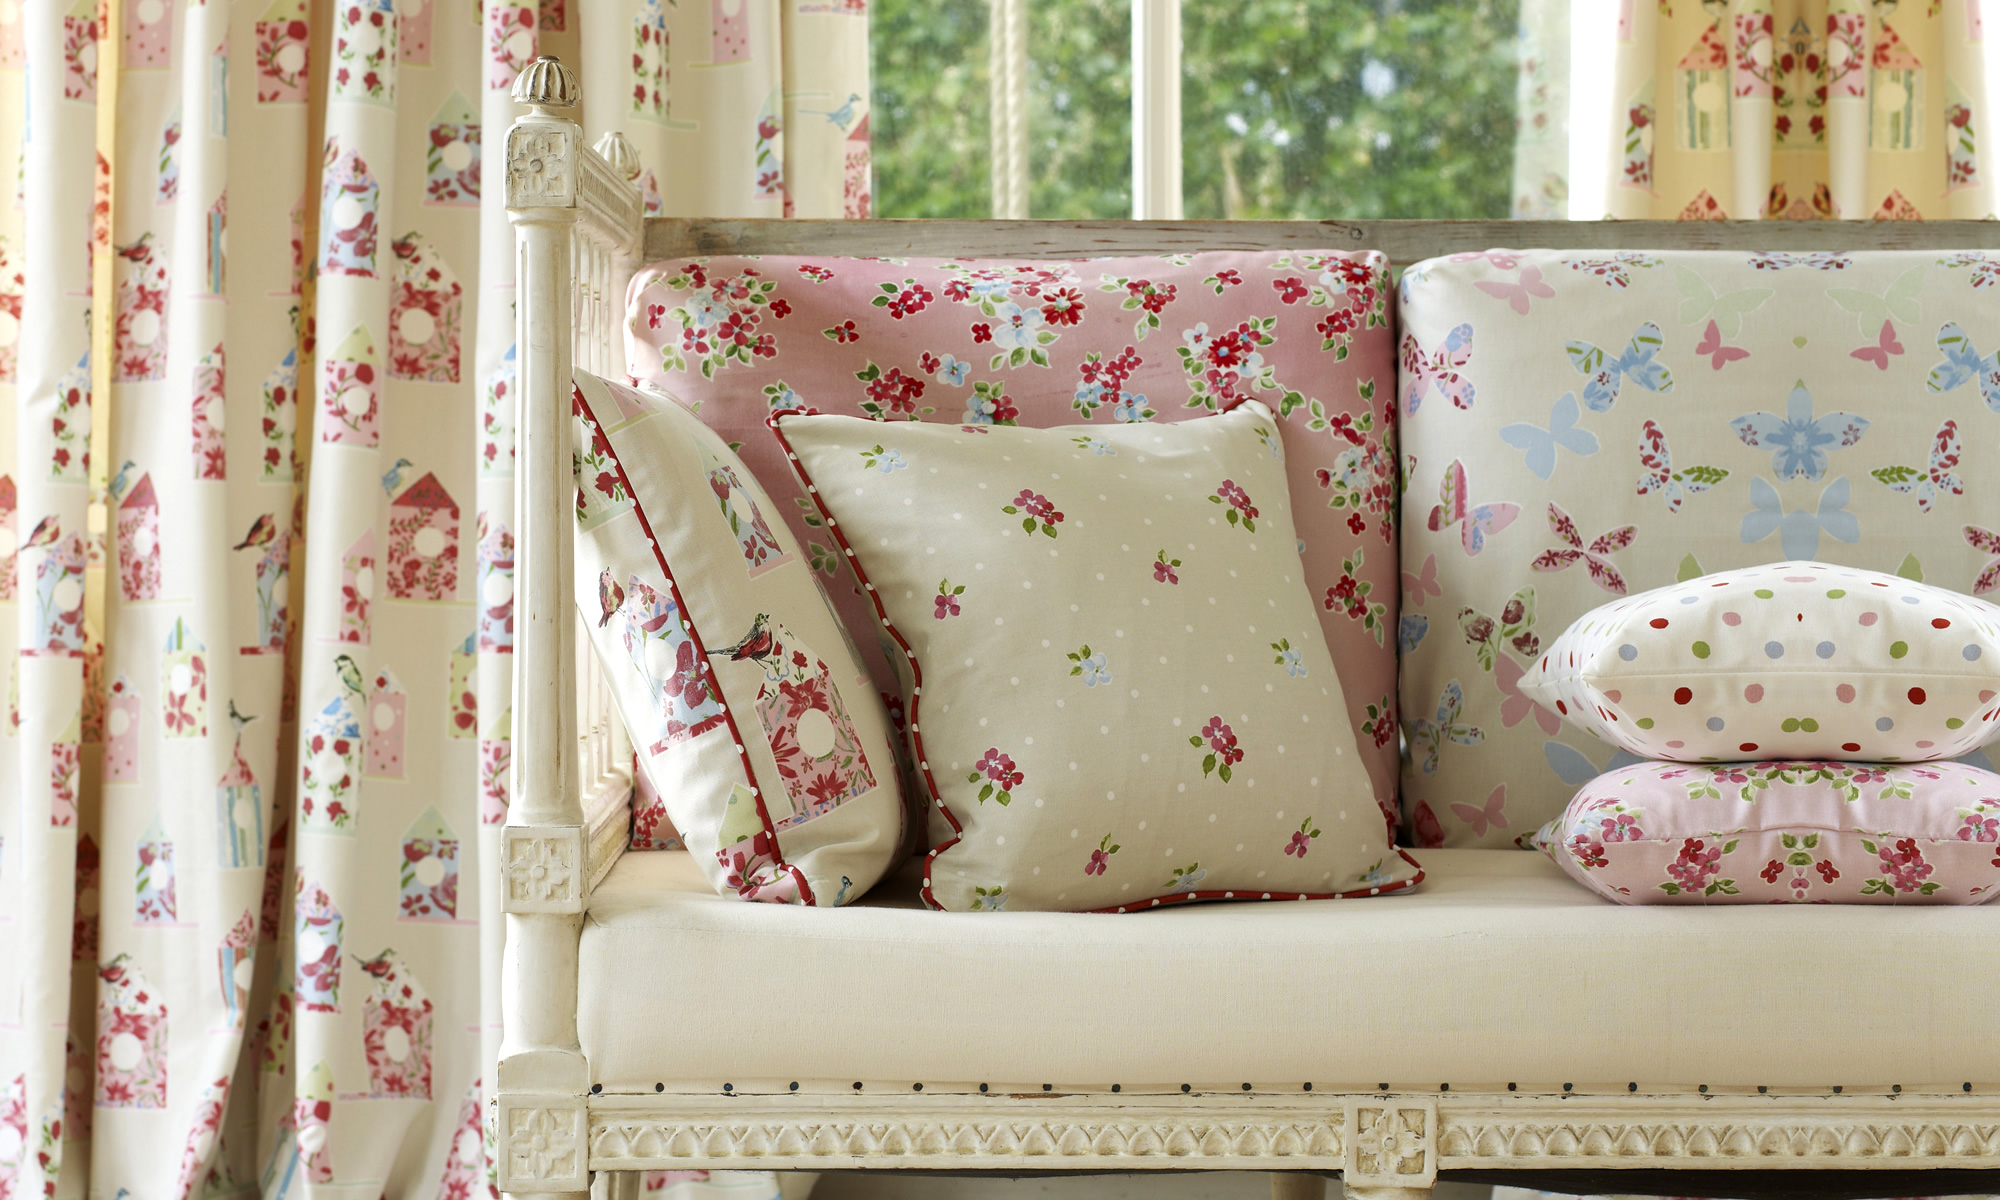 Selby soft furnishings the best online store for for Online decor stores